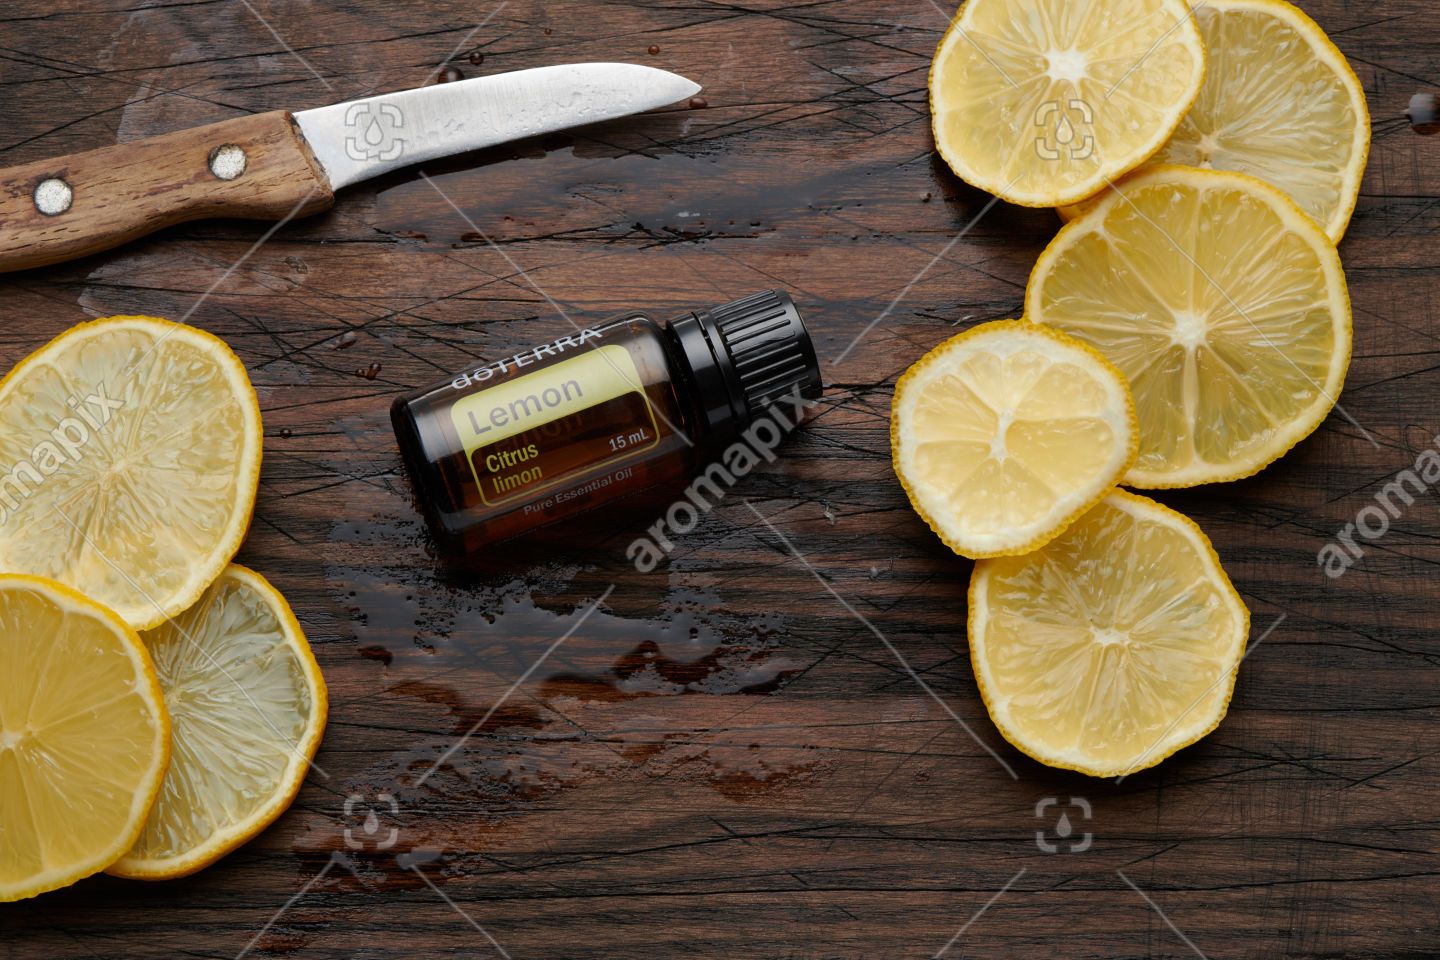 doTERRA Lemon product and slices on wooden board